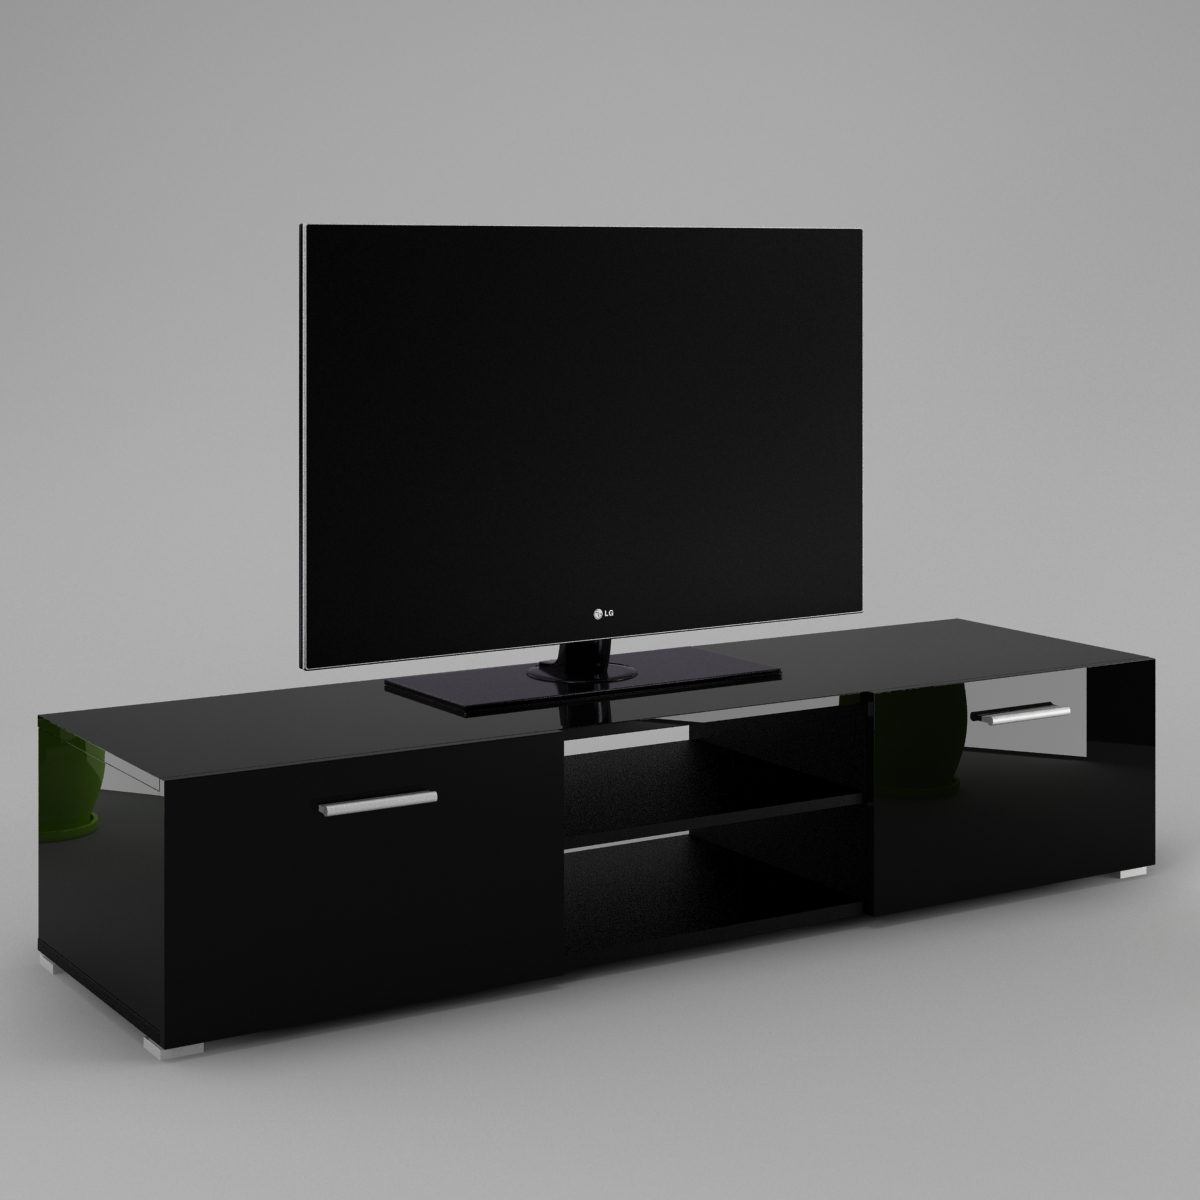 lowboard tv luna labi m bellabi m bel. Black Bedroom Furniture Sets. Home Design Ideas